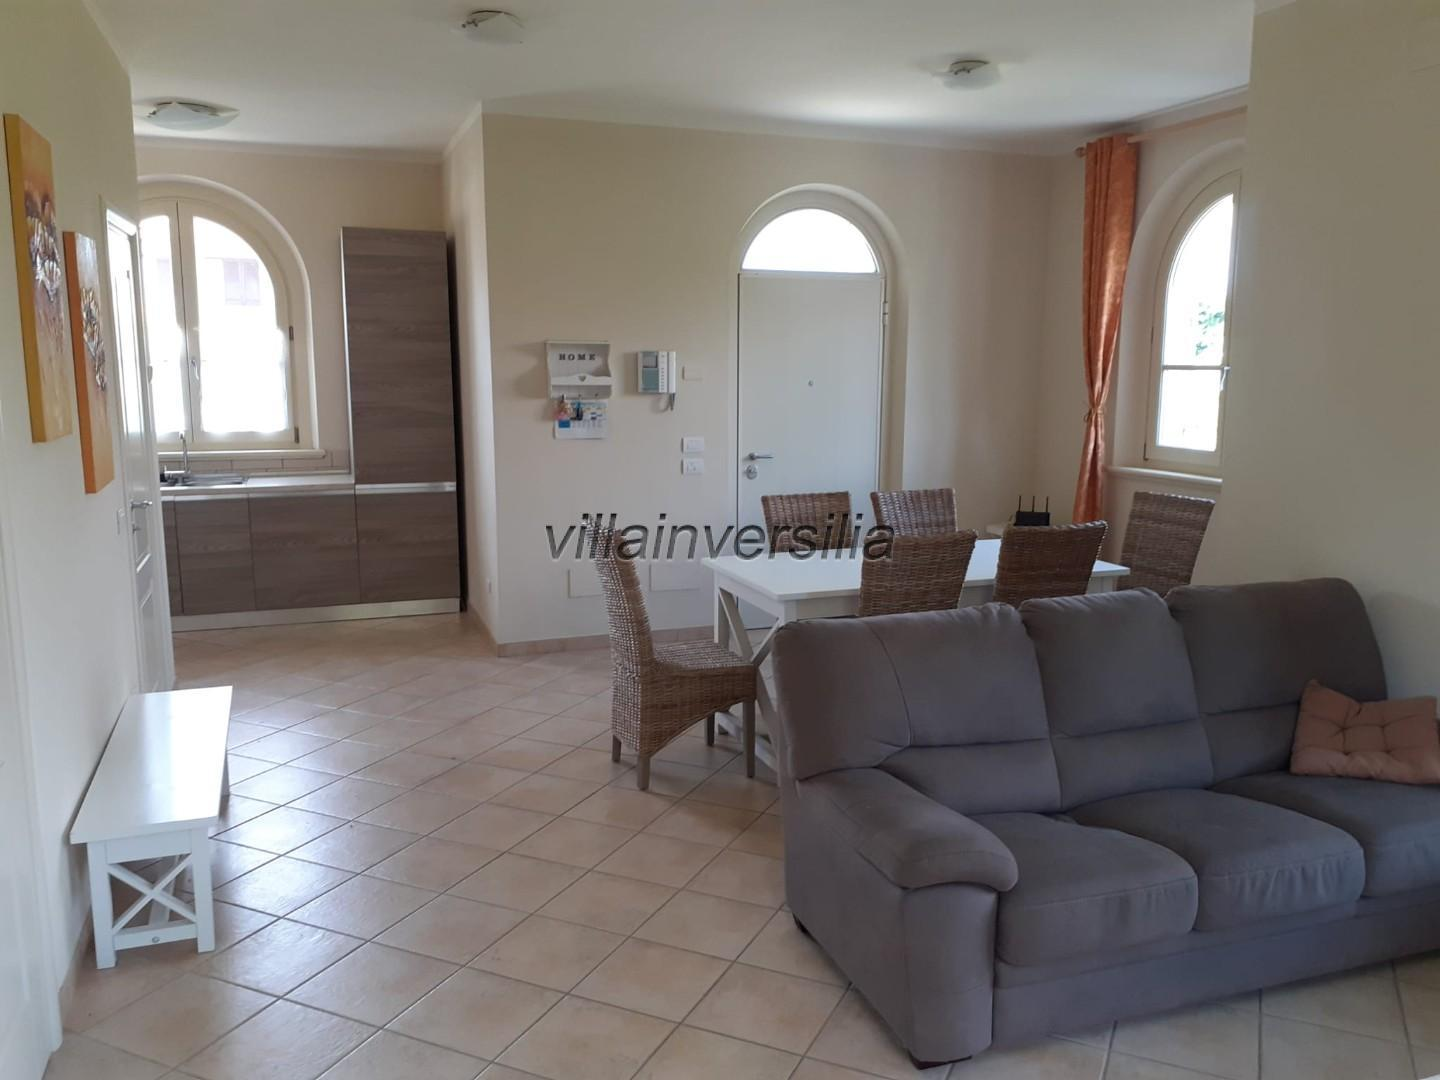 Semi-detached house in Pietrasanta